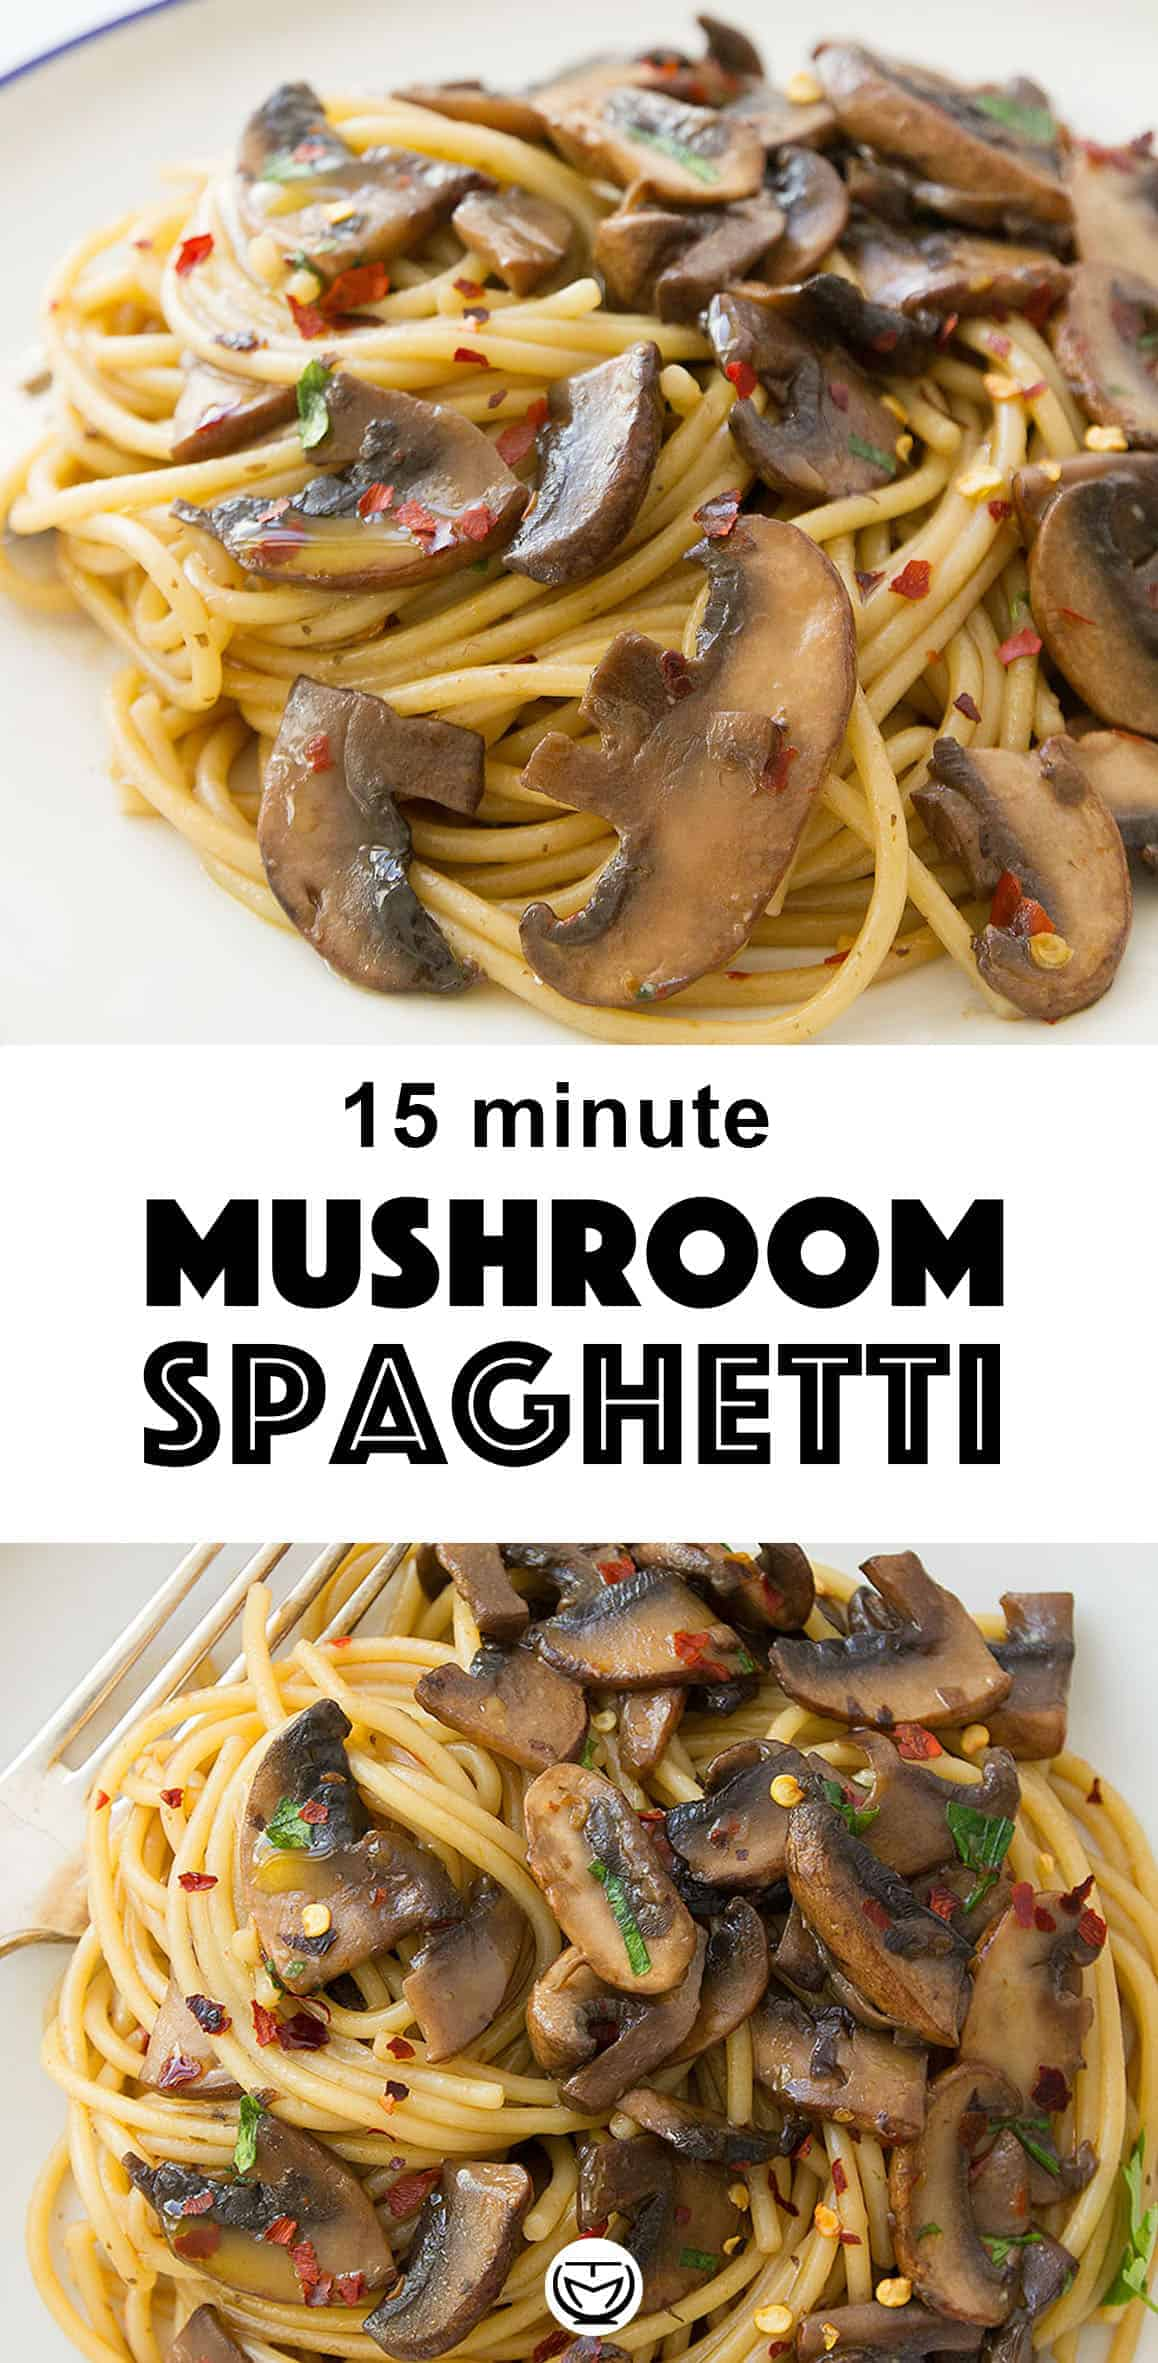 Everyone needs a good garlic mushroom pasta recipe in their back pocket for last-minute dinners! It's quick, healthy and super tasty. #pastarecipes #mushroomrecipes #15minutemeals #easydinnerrecipes